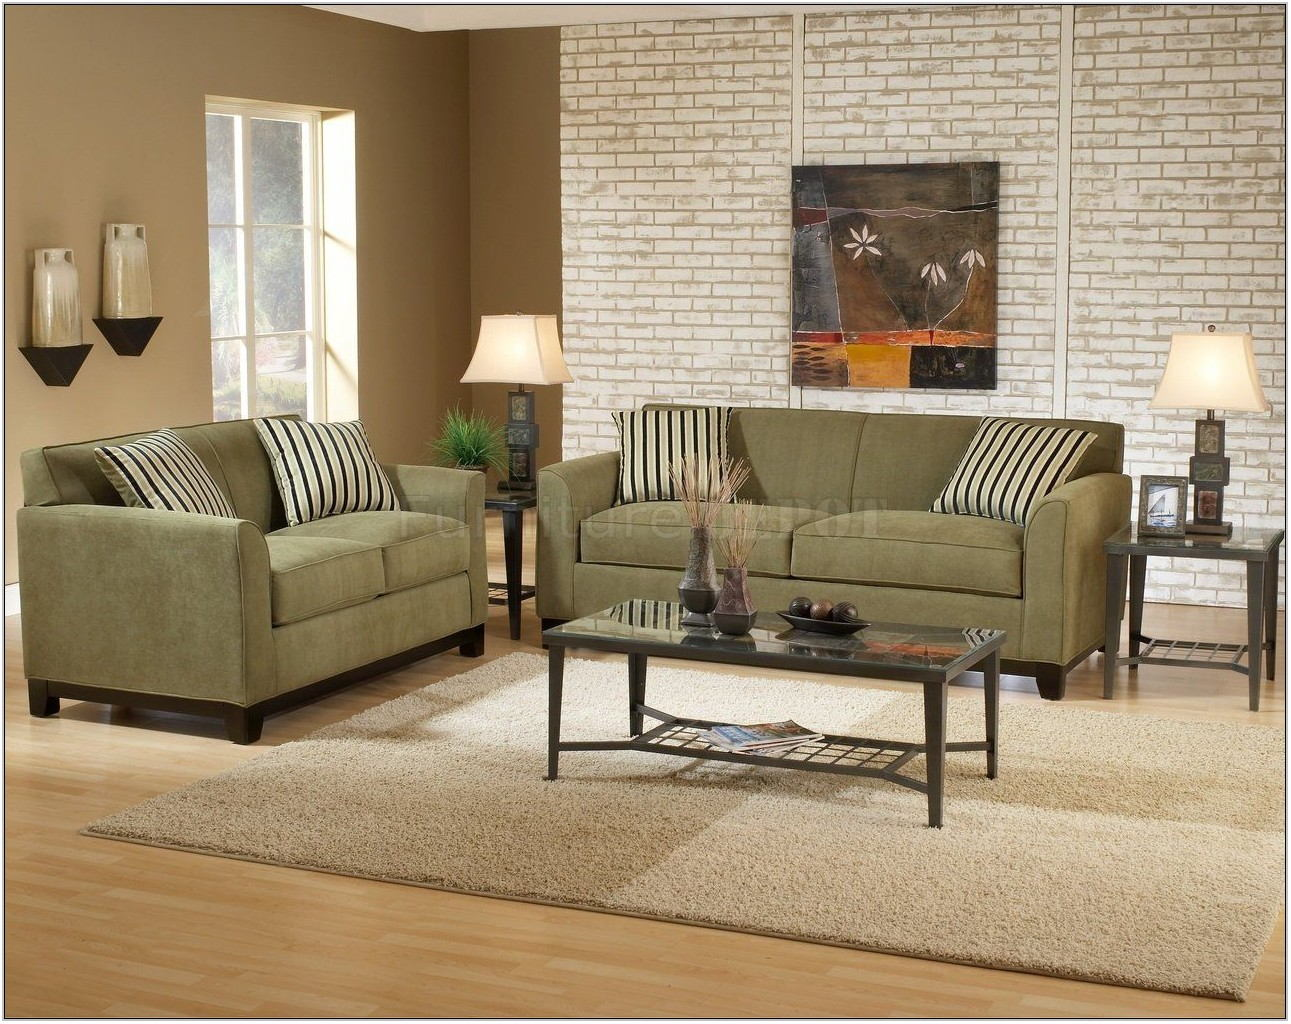 Green Paint Ideas For Living Room